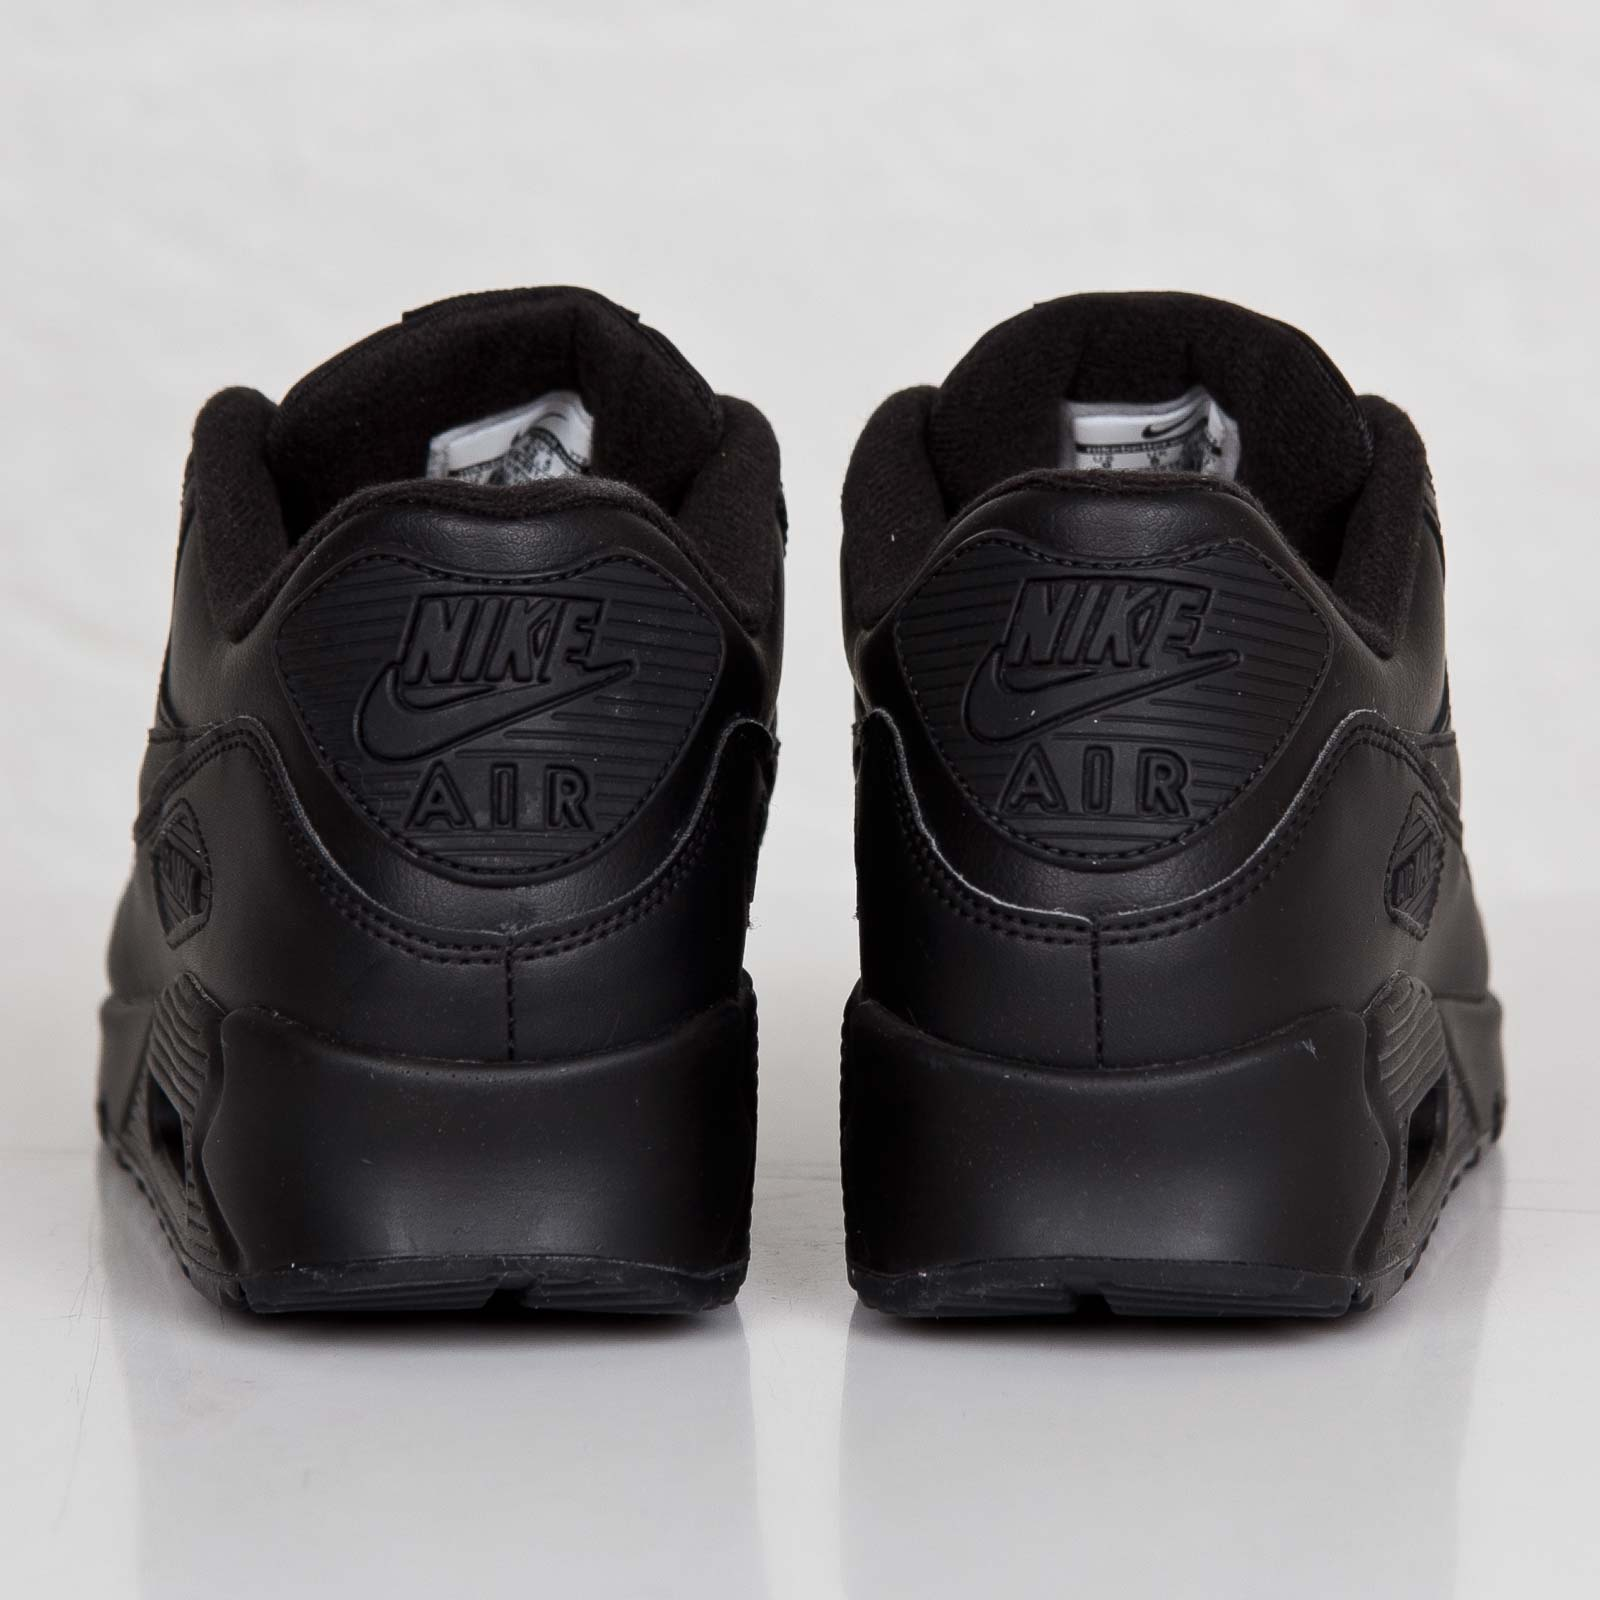 acbe8630e82 Nike Air Max 90 Leather - 302519-001 - Sneakersnstuff